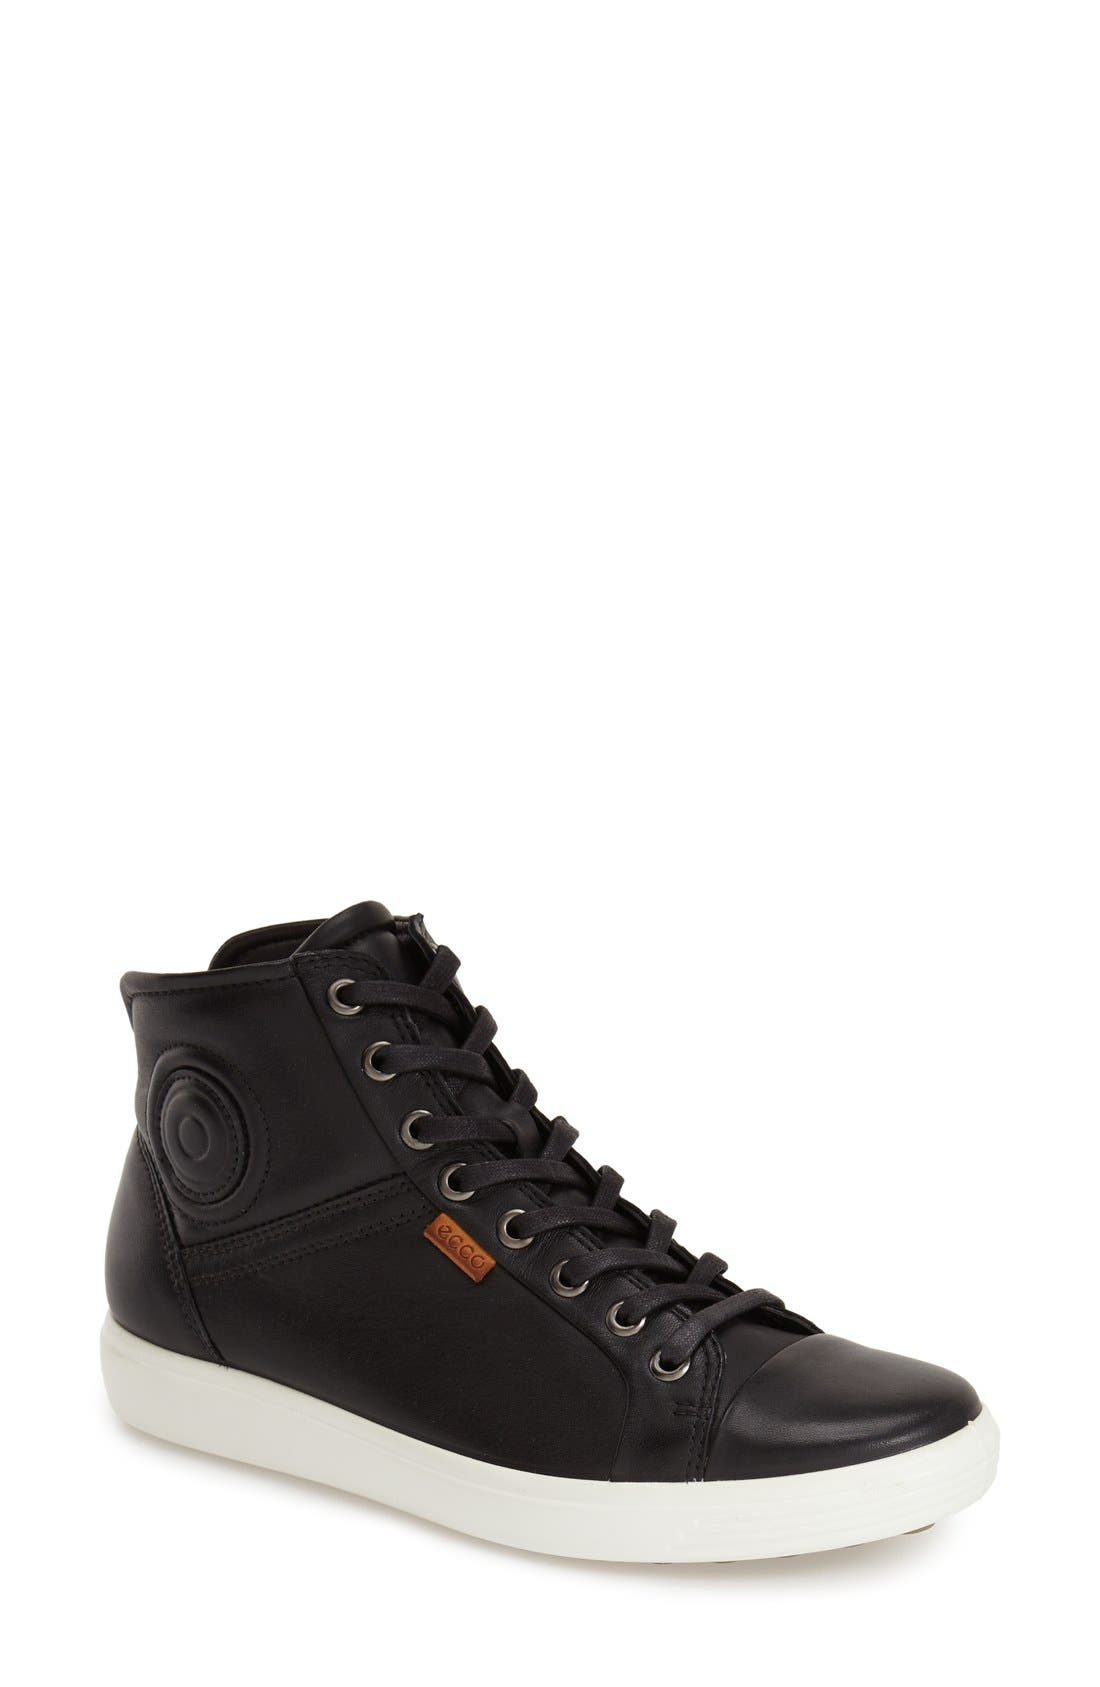 'Soft 7' High Top Sneaker,                         Main,                         color, 001